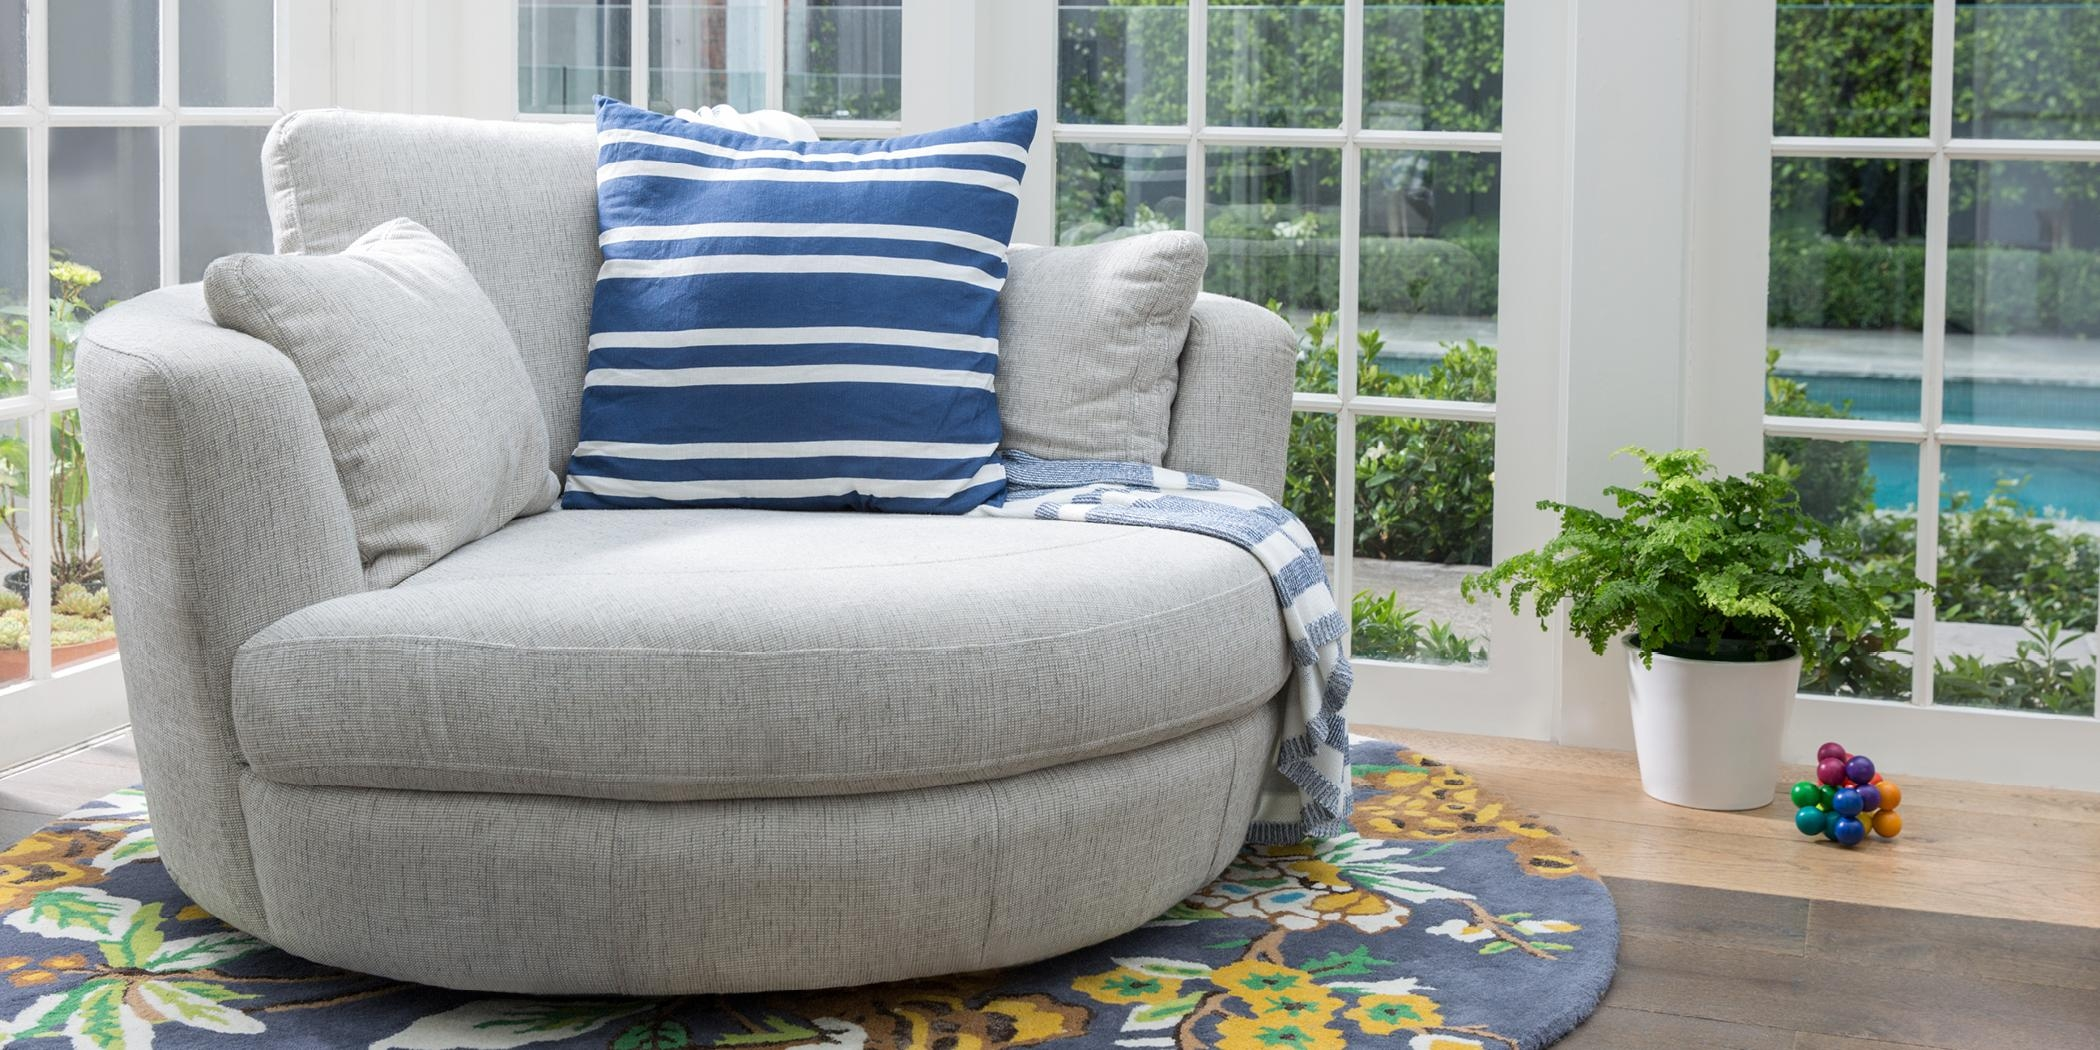 Snuggle Chair | Leather, Fabric, Occasional Chairs | Plush Furniture Within Snuggle Sofas (Image 13 of 20)